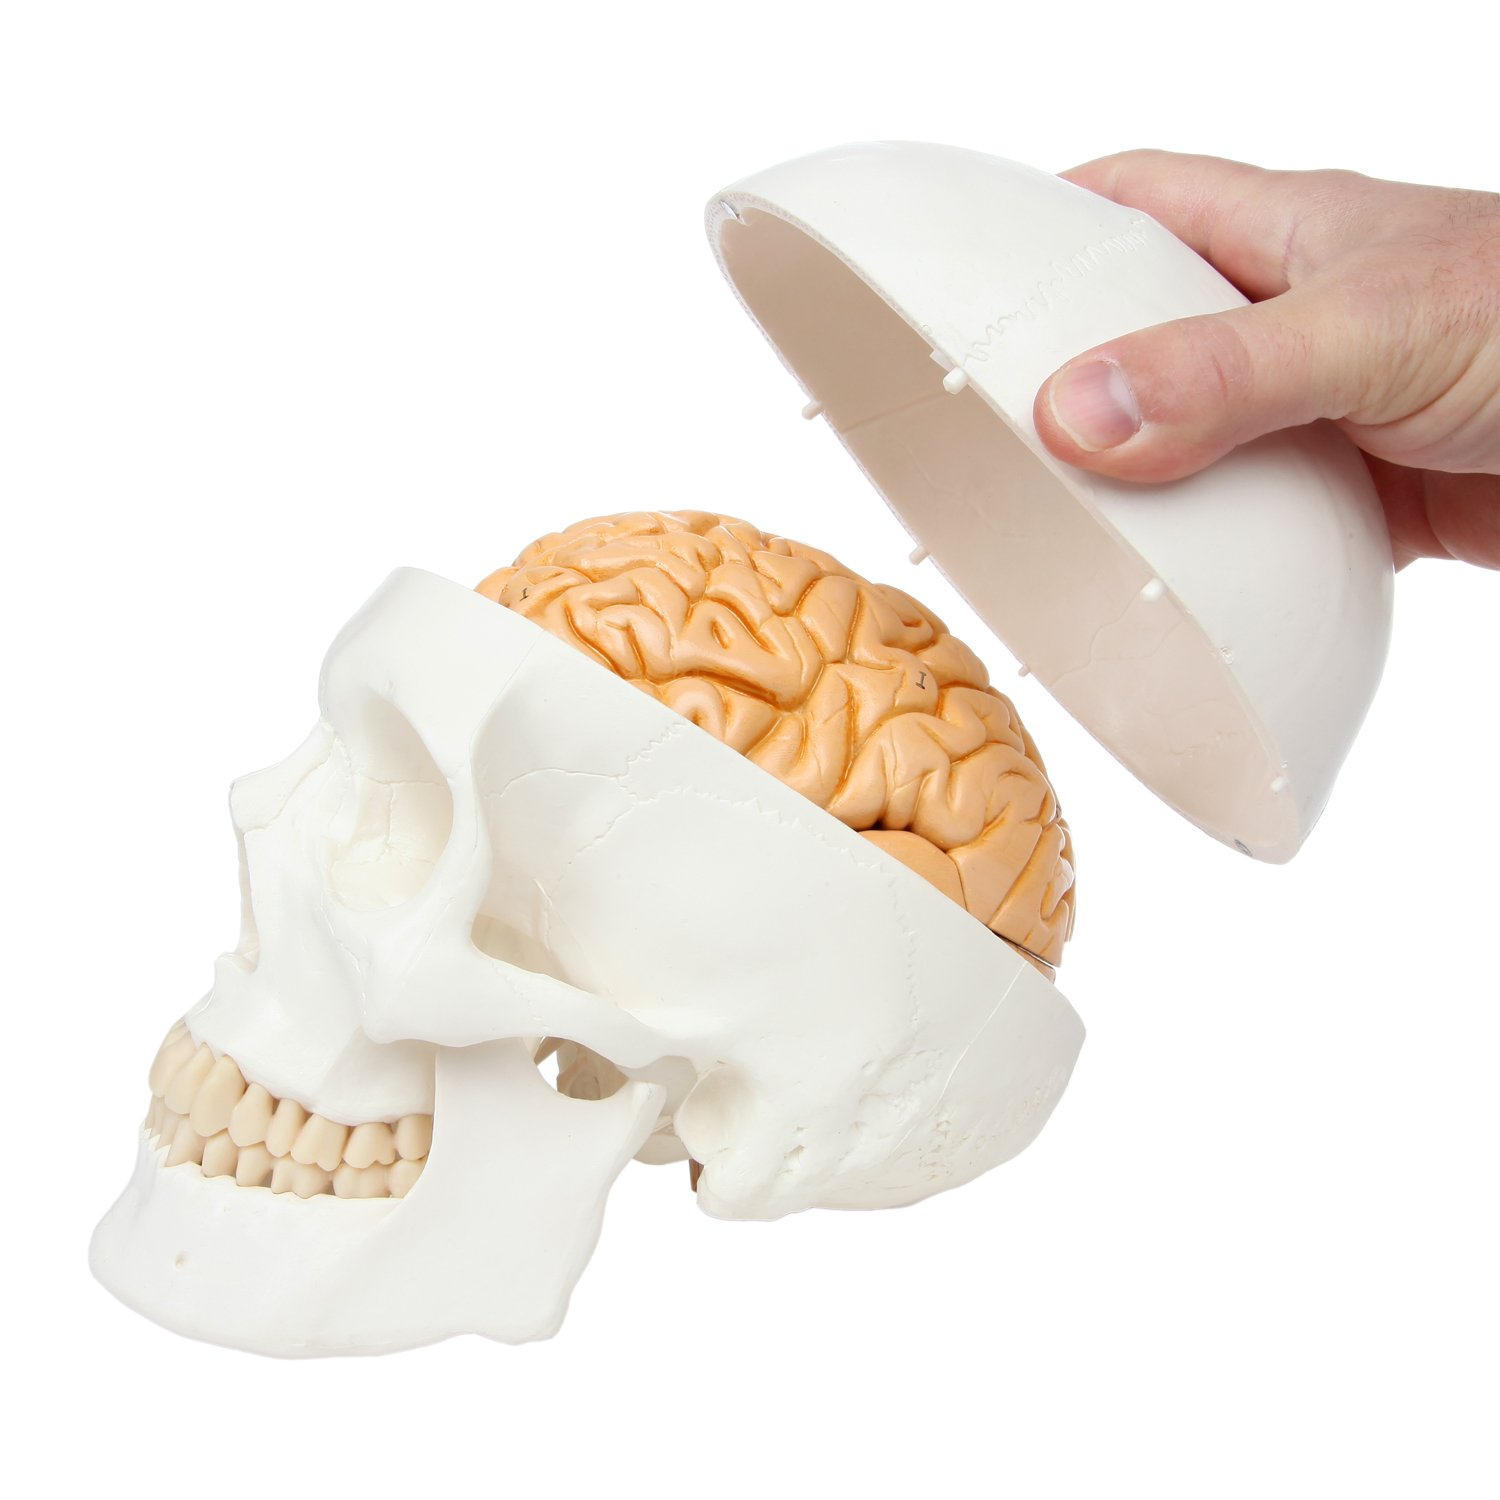 Axis Scientific 3-Part Human Skull Model with Removable 8-Part Brain | Life Size Plastic Skull is Molded from a Real Human Skull | Includes Detailed Product Manual | 3 Year Warranty A-105178